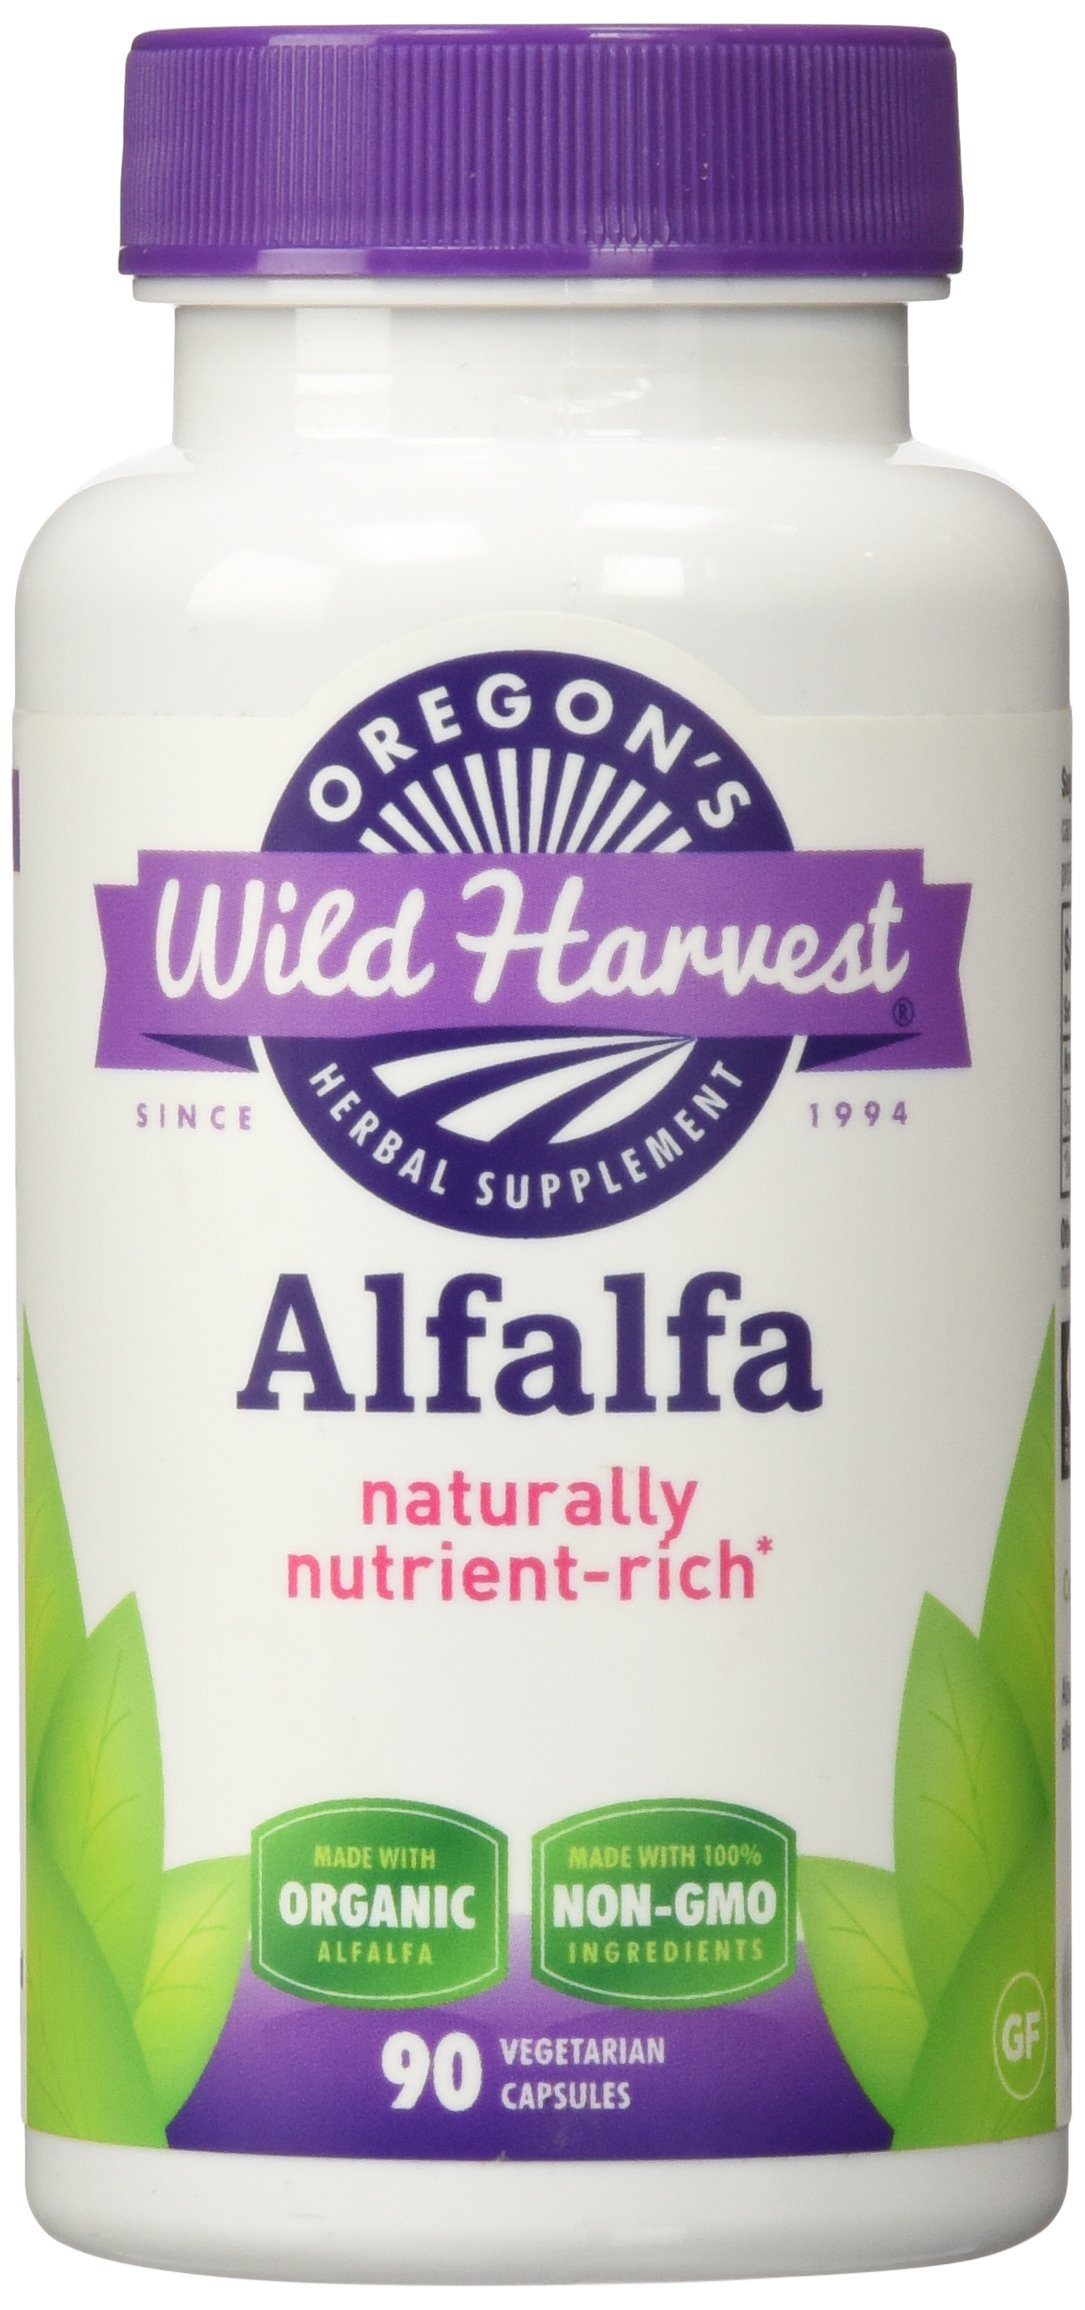 Oregons Wild Harvest Alfalfa Organic Supplement, 90 Count vegetarian capsules, 1200mg organic alfalfa tops